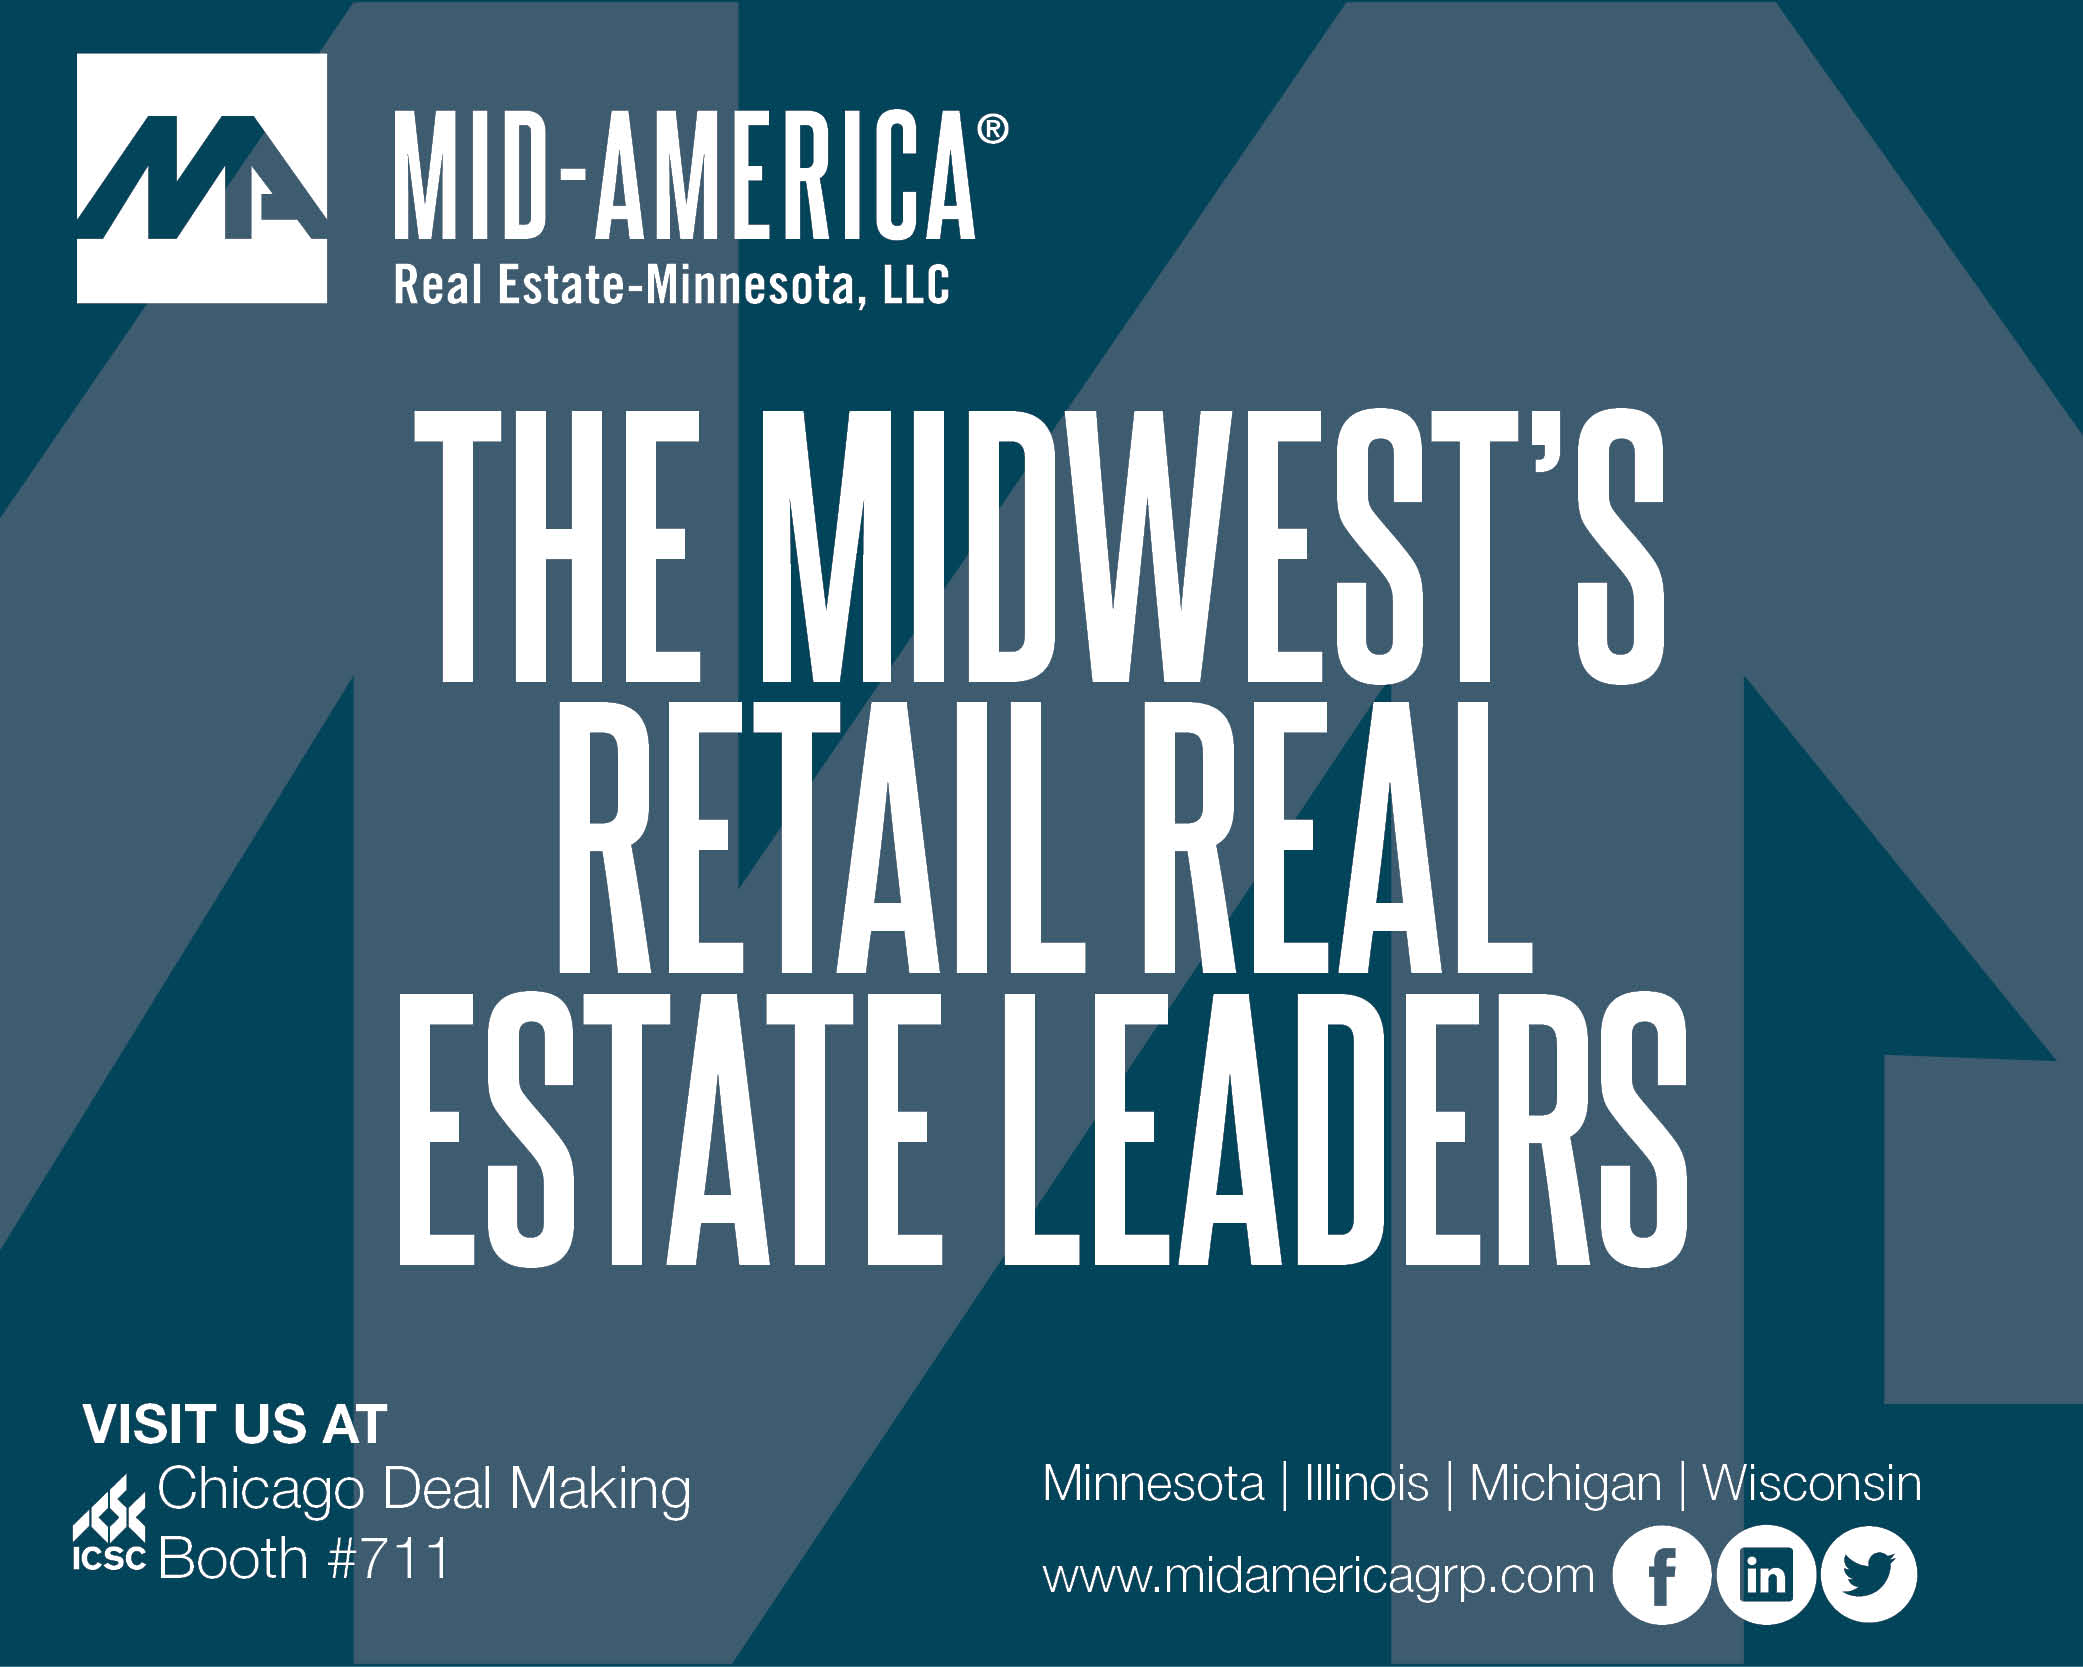 Top 10 Most Popular Commercial Real Estate Stories This Week (Twin Cities)